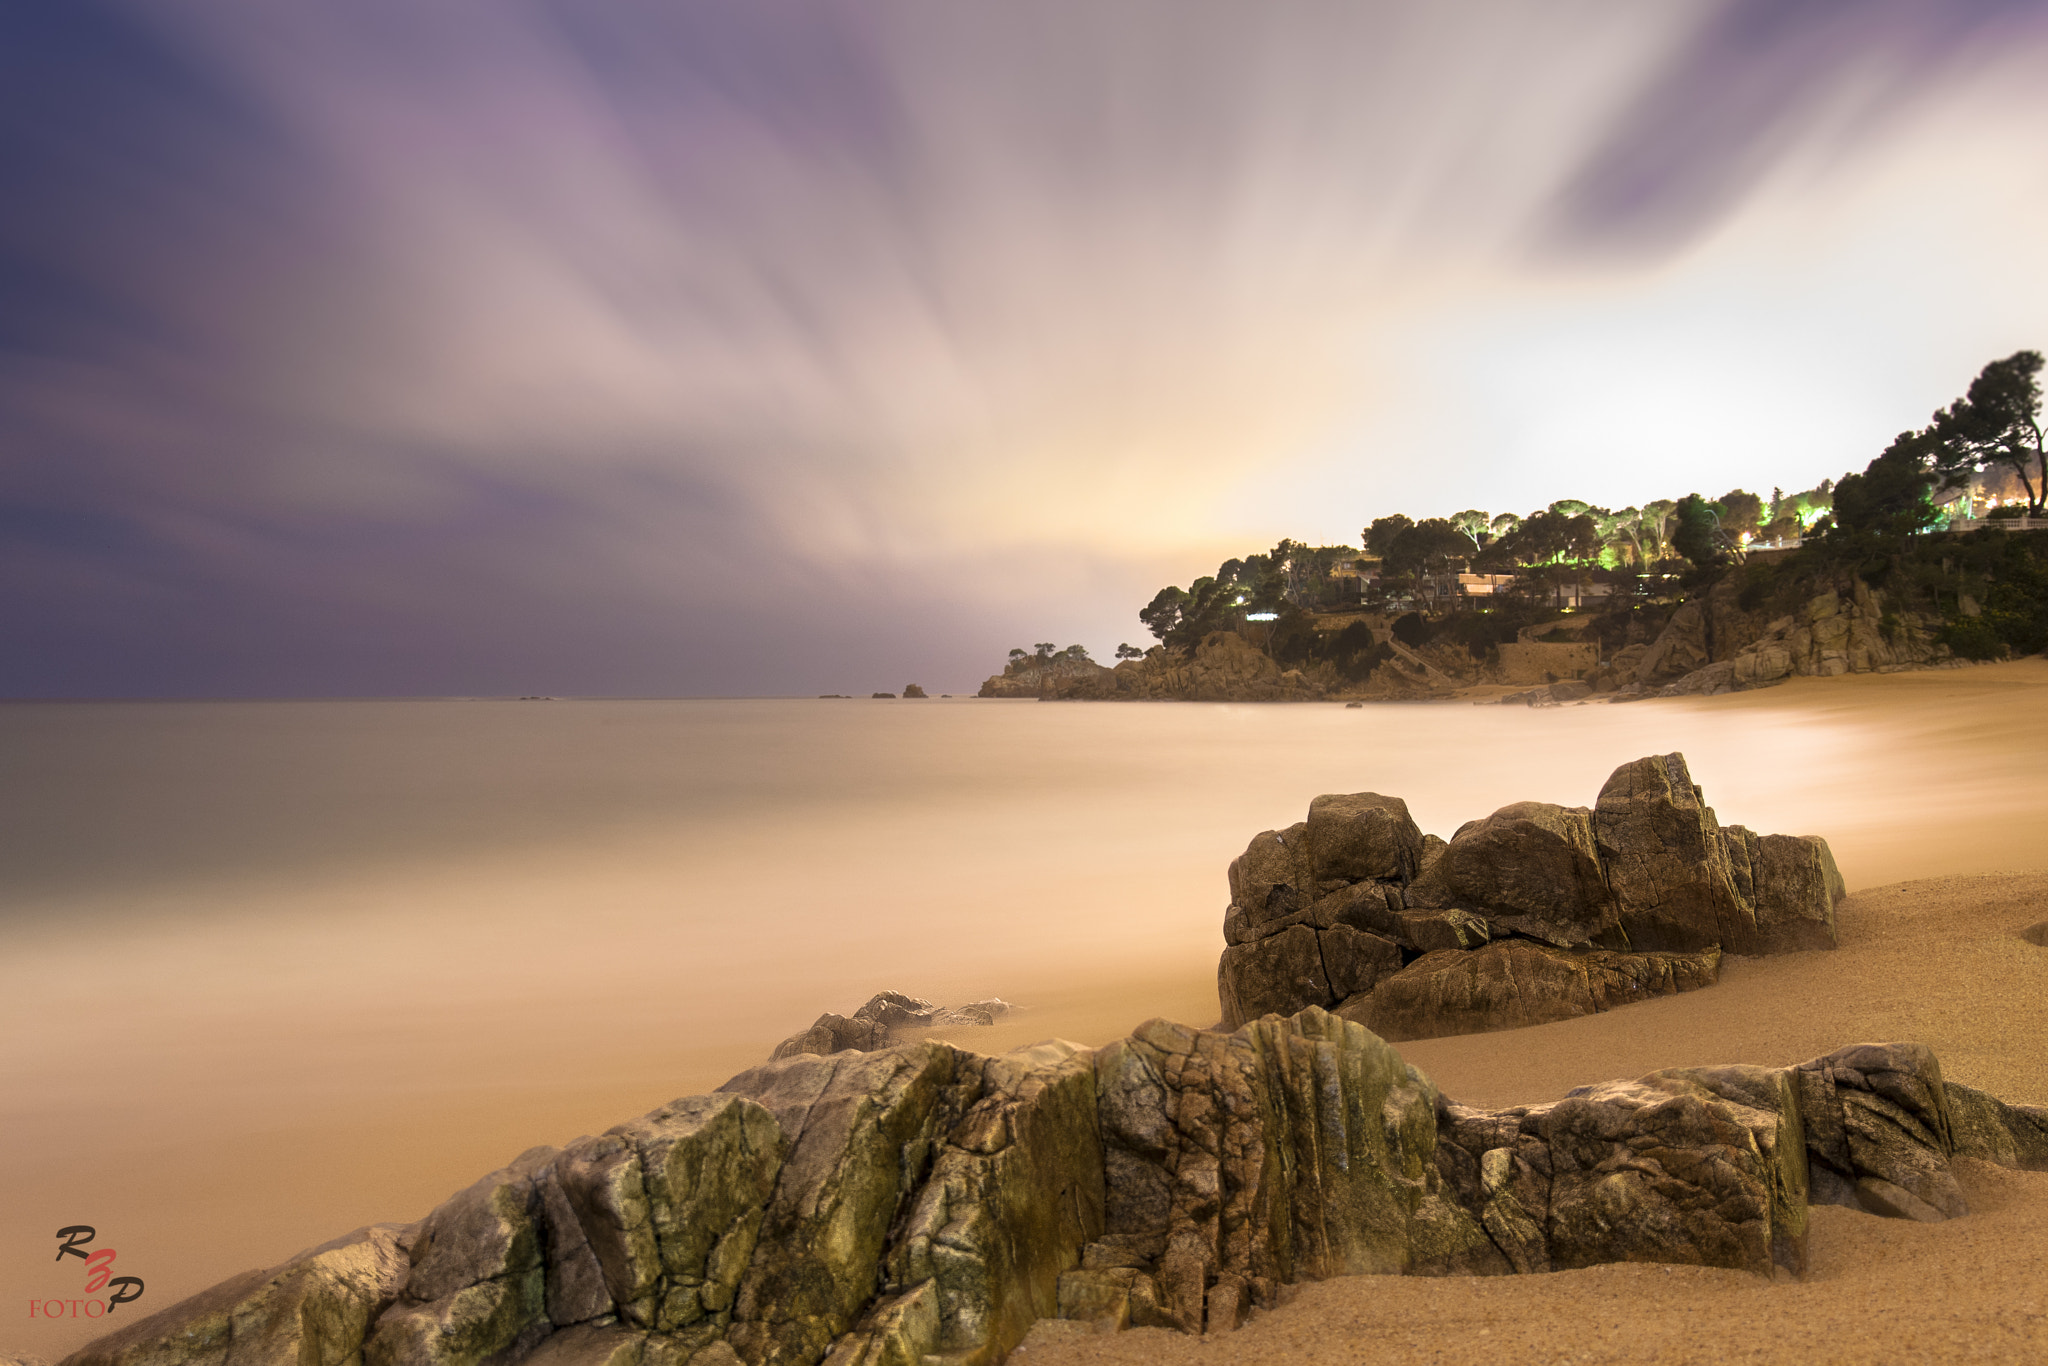 Photograph rocks in the sand by Ricard Zamora on 500px